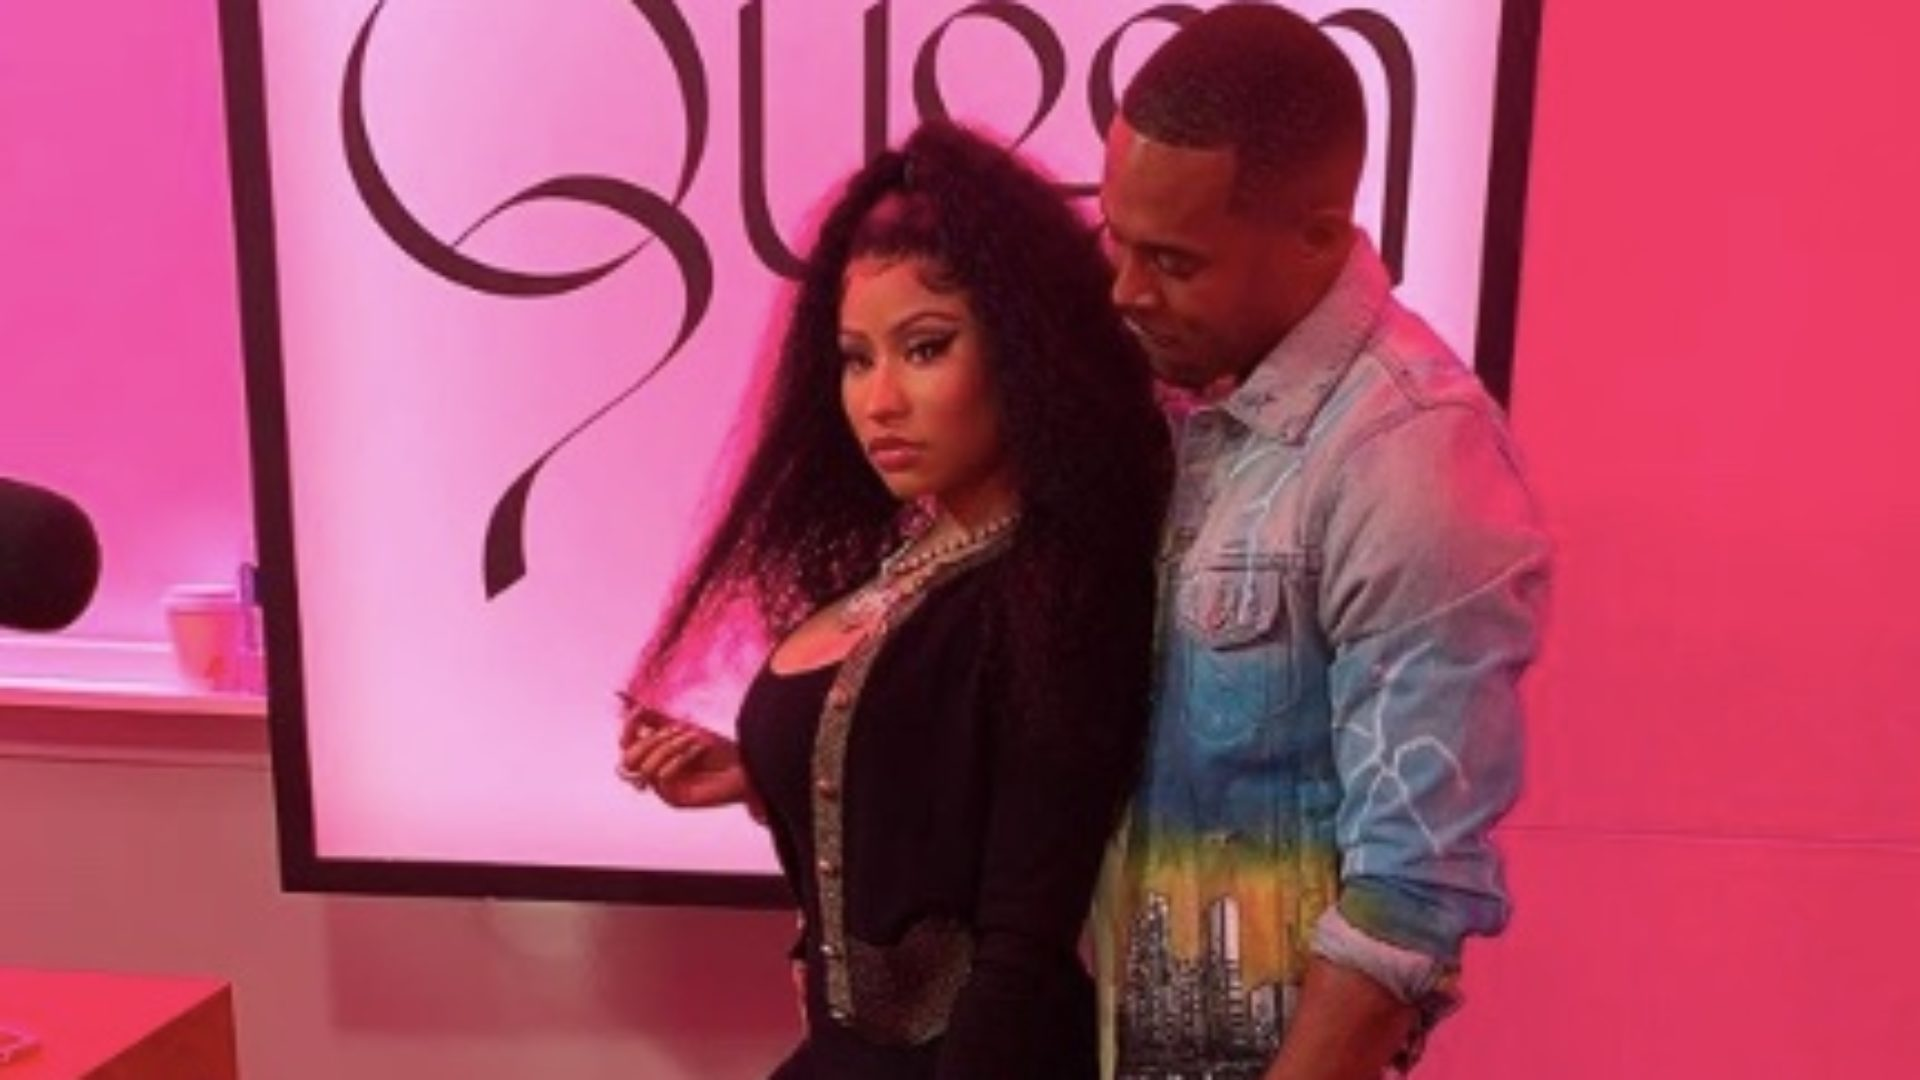 Nicki Minaj And Boyfriend Kenneth Petty Got a Marriage License